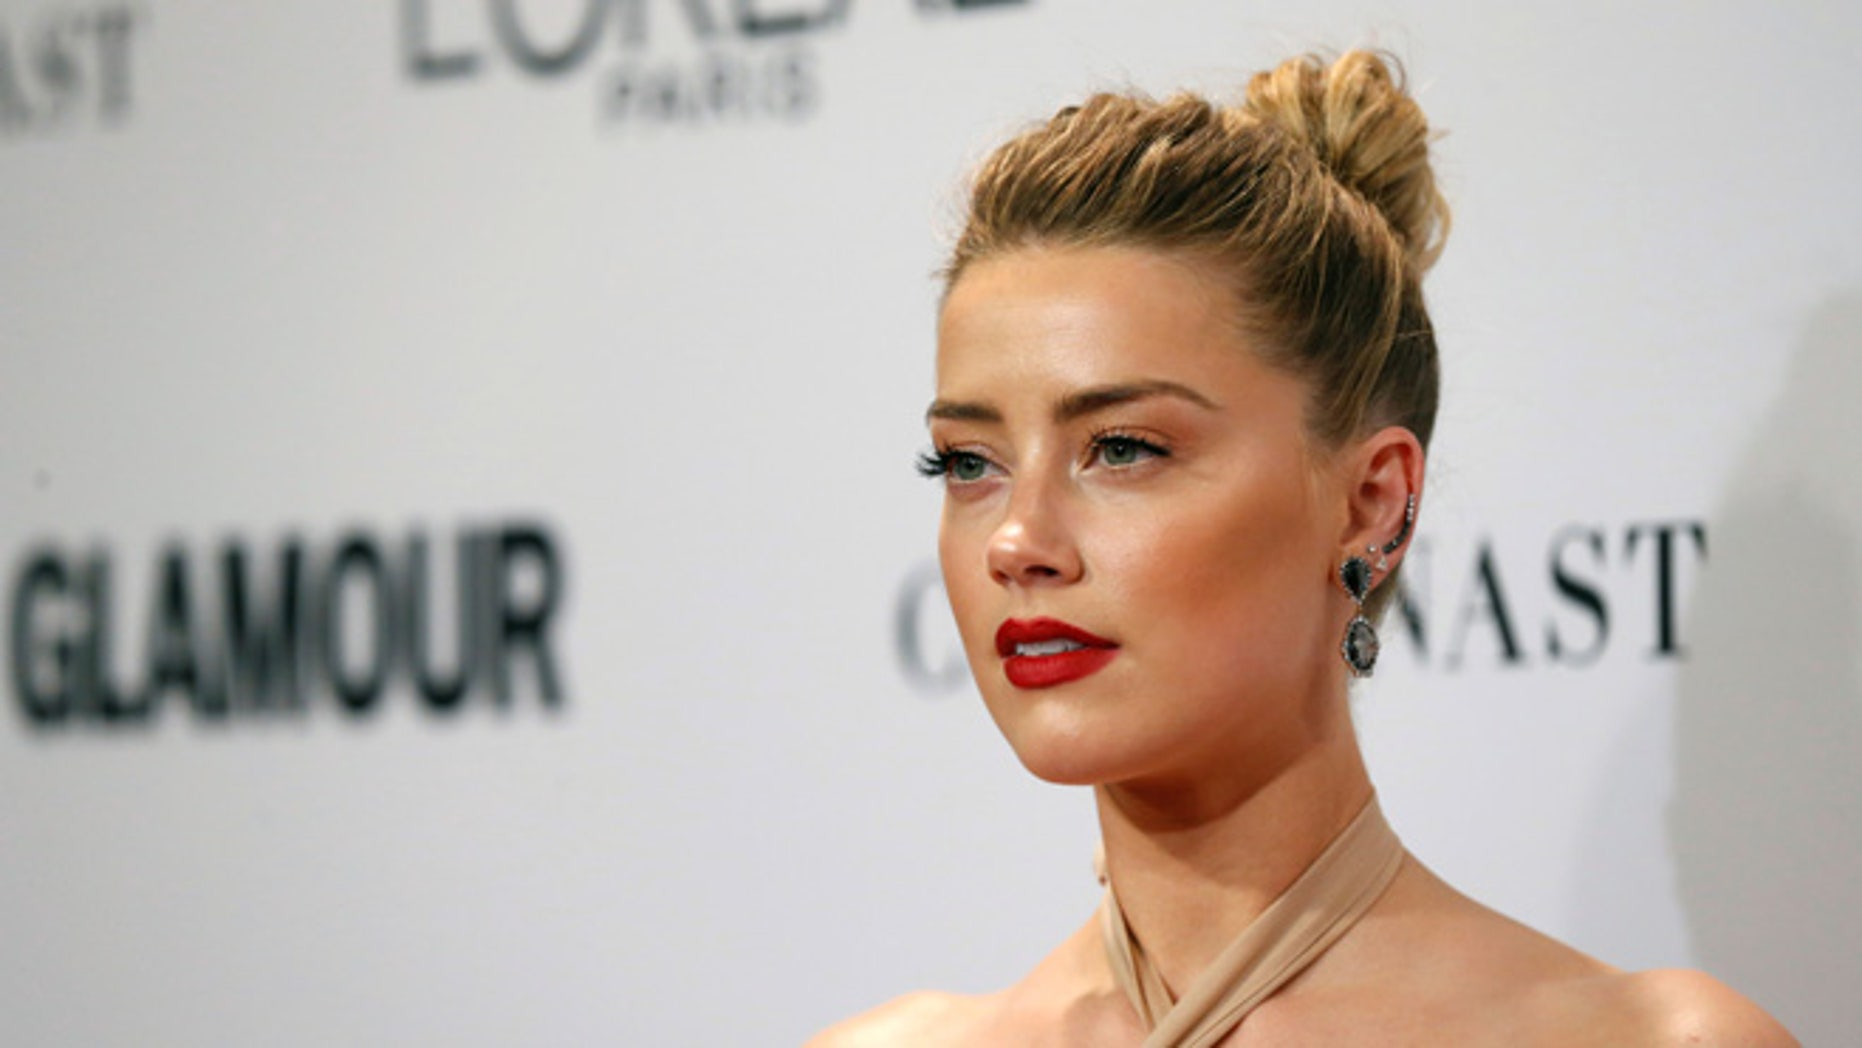 Amber Heard spoke about domestic violence in a Facebook video.